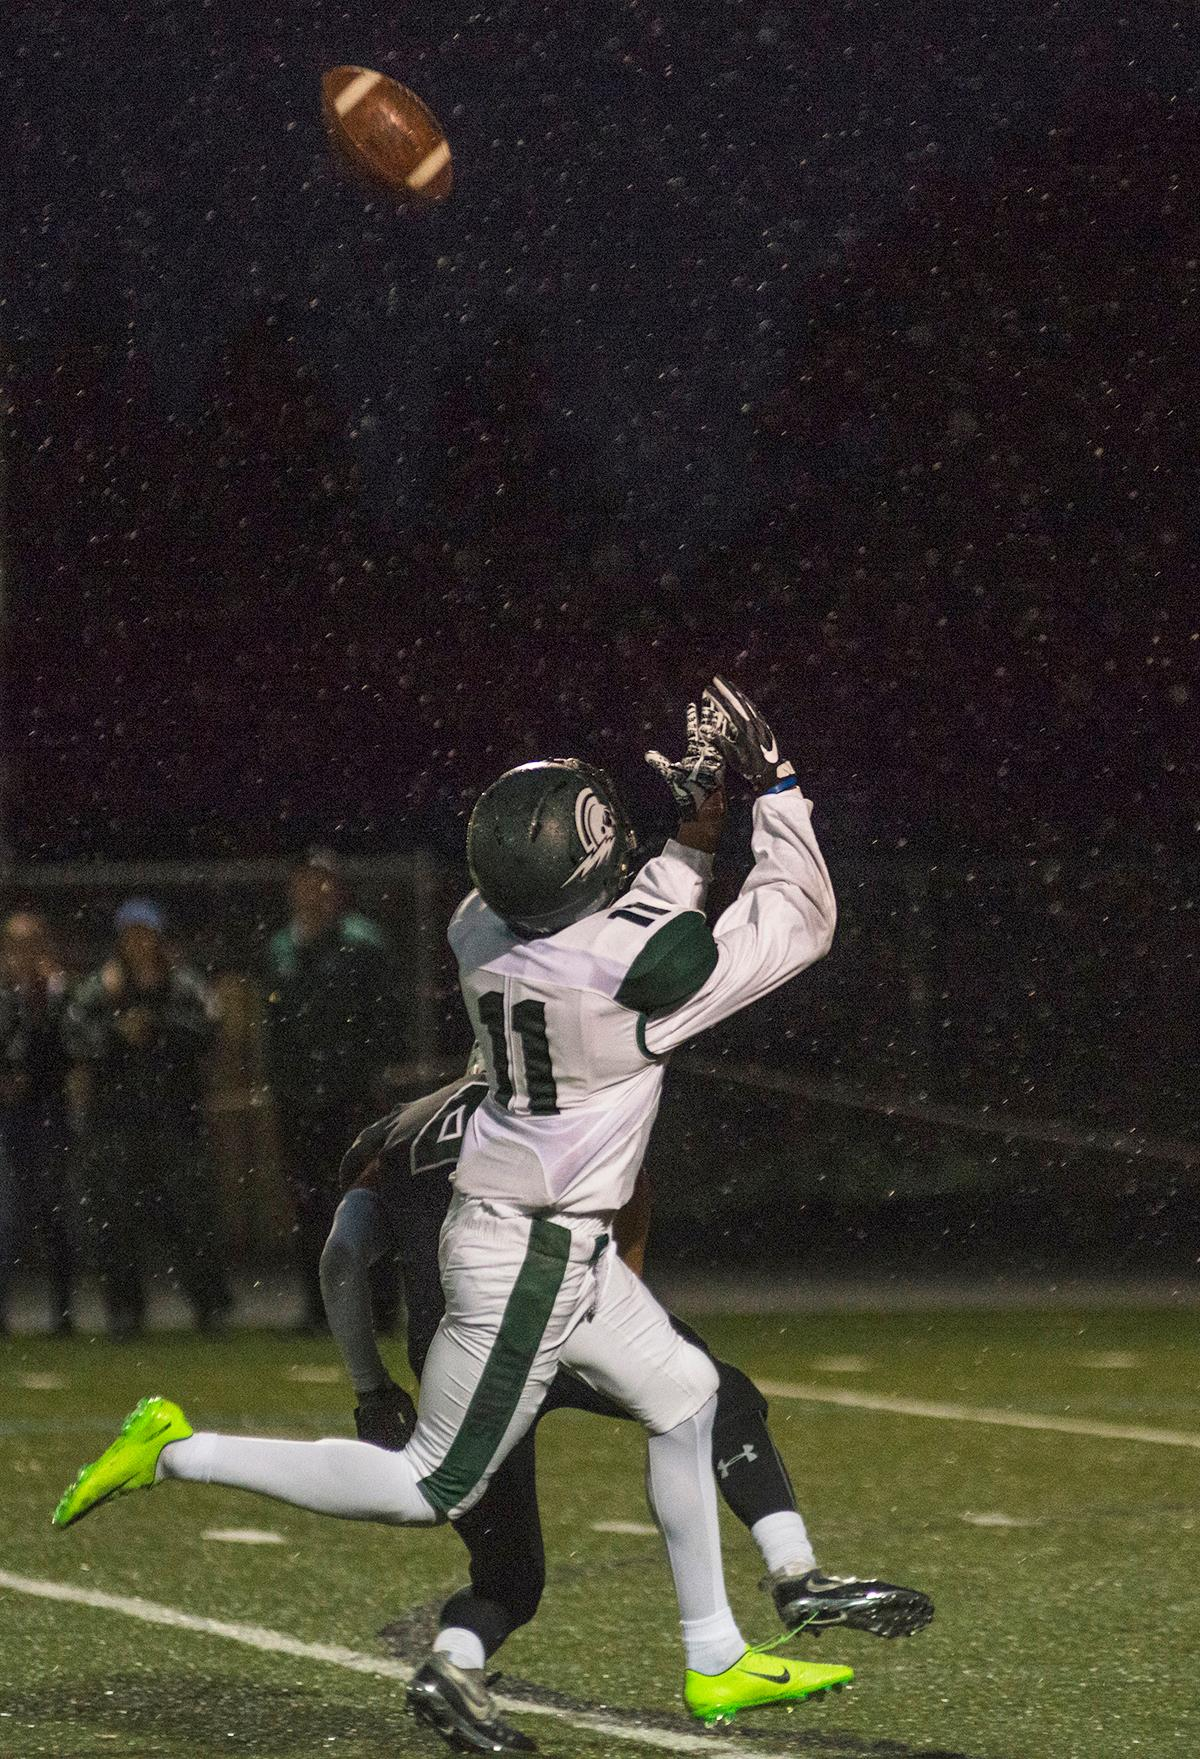 West Salem Titans wide receiver Stanley Green (#7) runs to catch the ball.  On a rainy Monday evening, Sheldon defeated West Salem 41 to 7 at their home field. The game had been postponed from Friday due to unhealthy levels of smoke in the atmosphere from nearby forest fires. Abigail Winn, Oregon News Lab